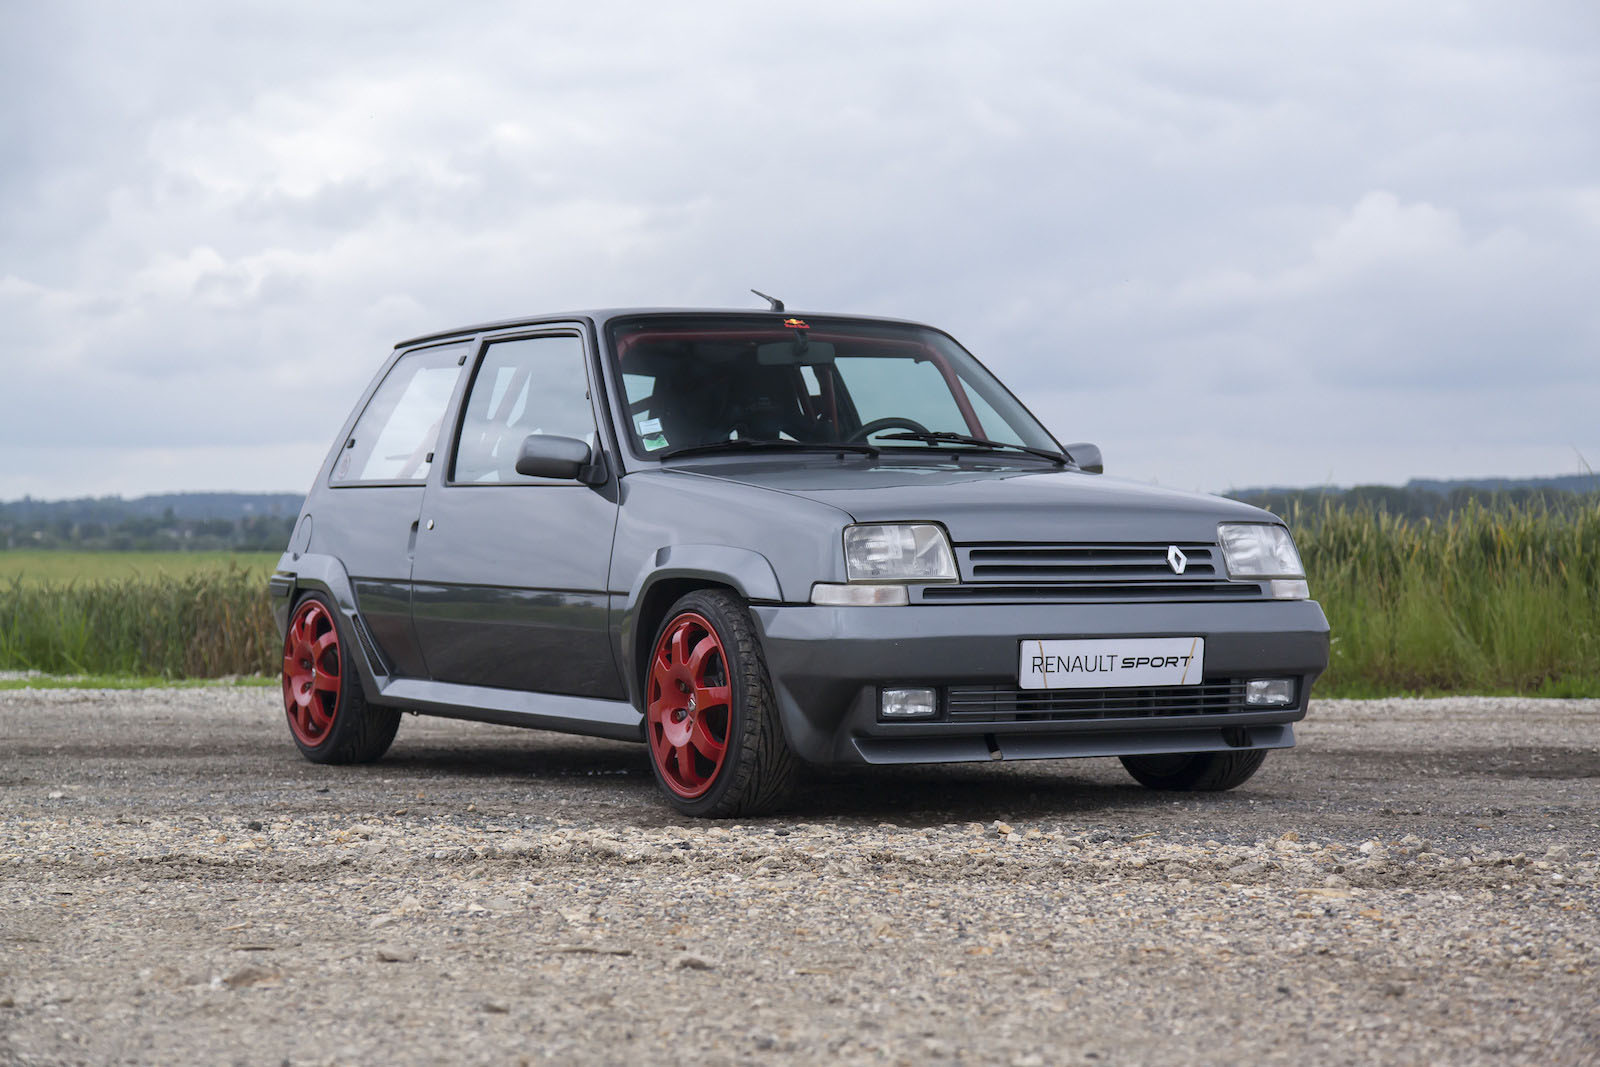 1987 Renault 5 GT Turbo with a 2.0 L 16v turbo inline-four